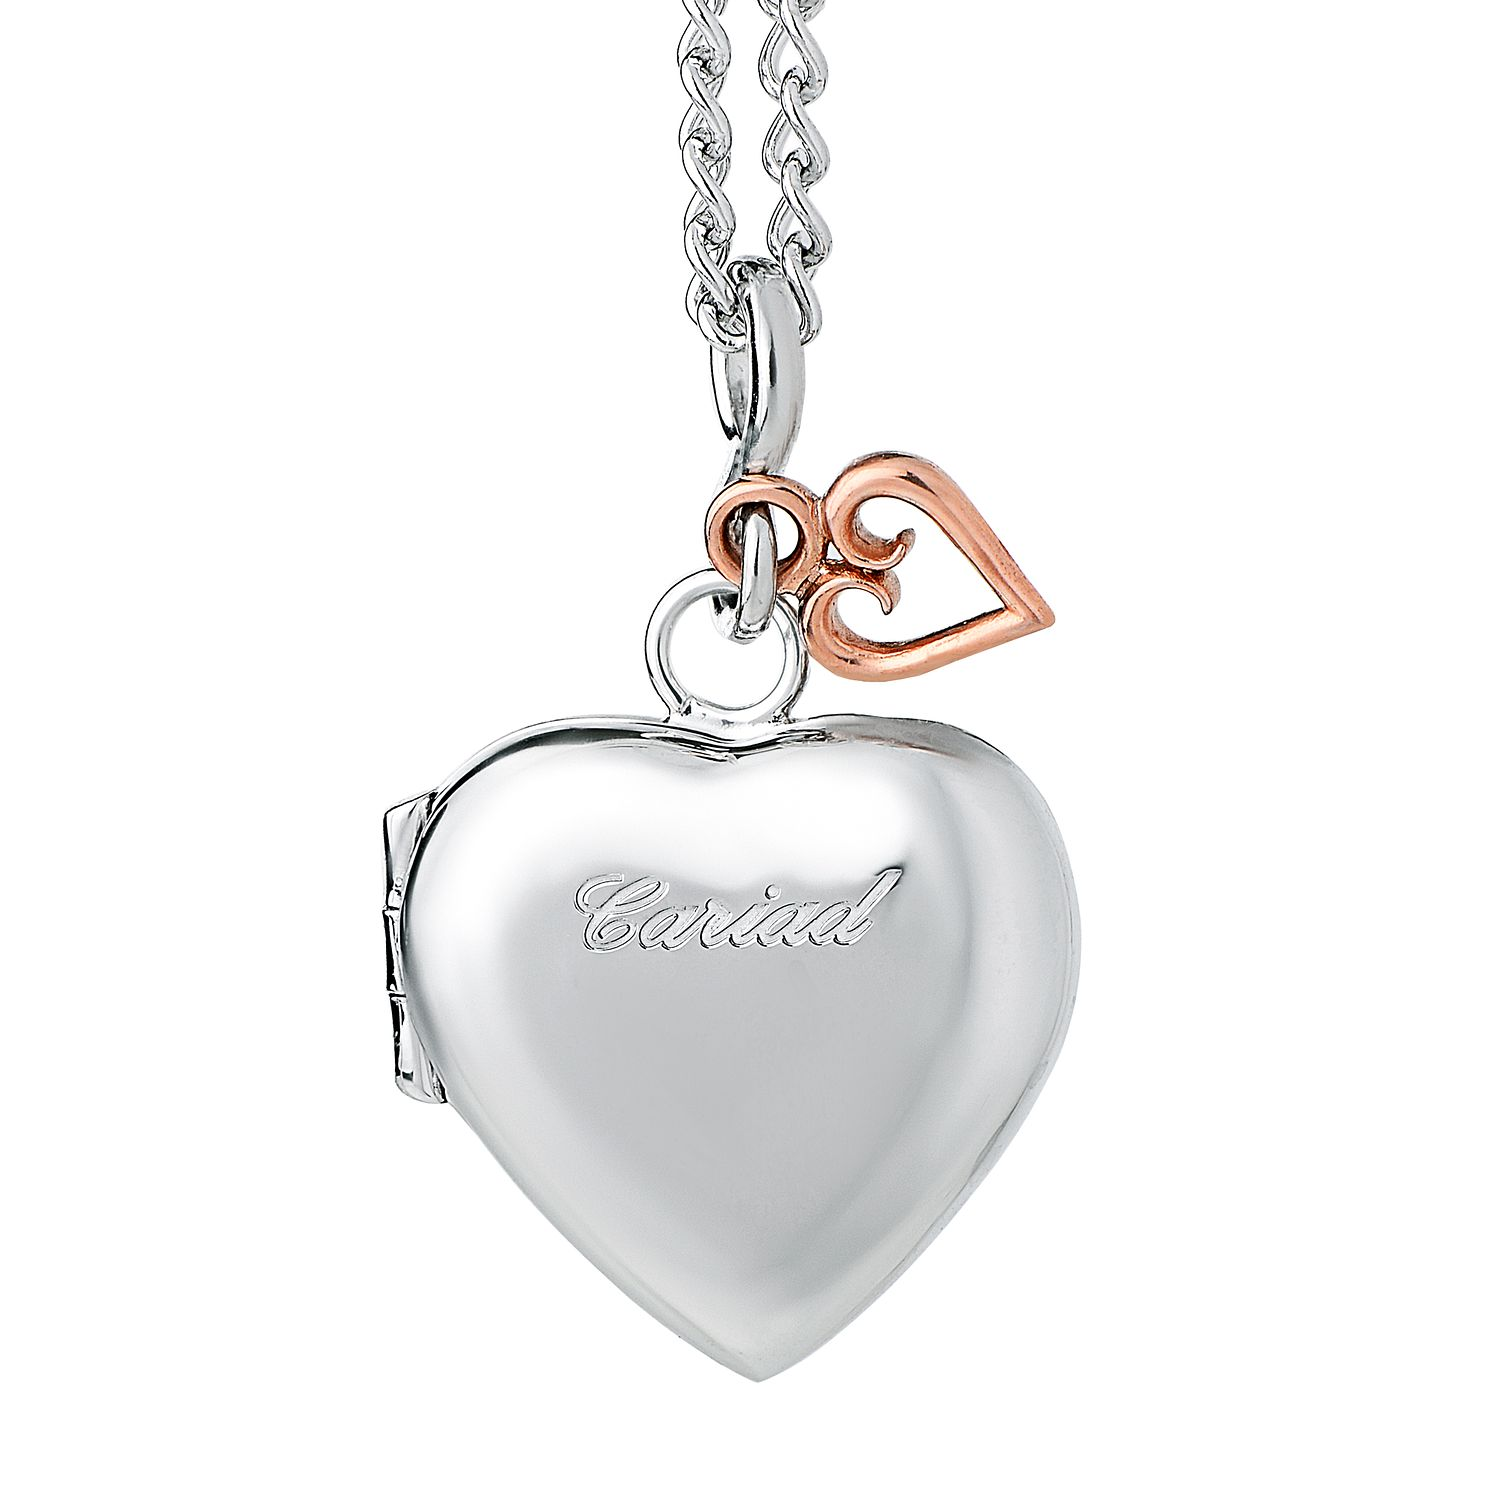 Clogau Cariad Heart Locket - Product number 6775624